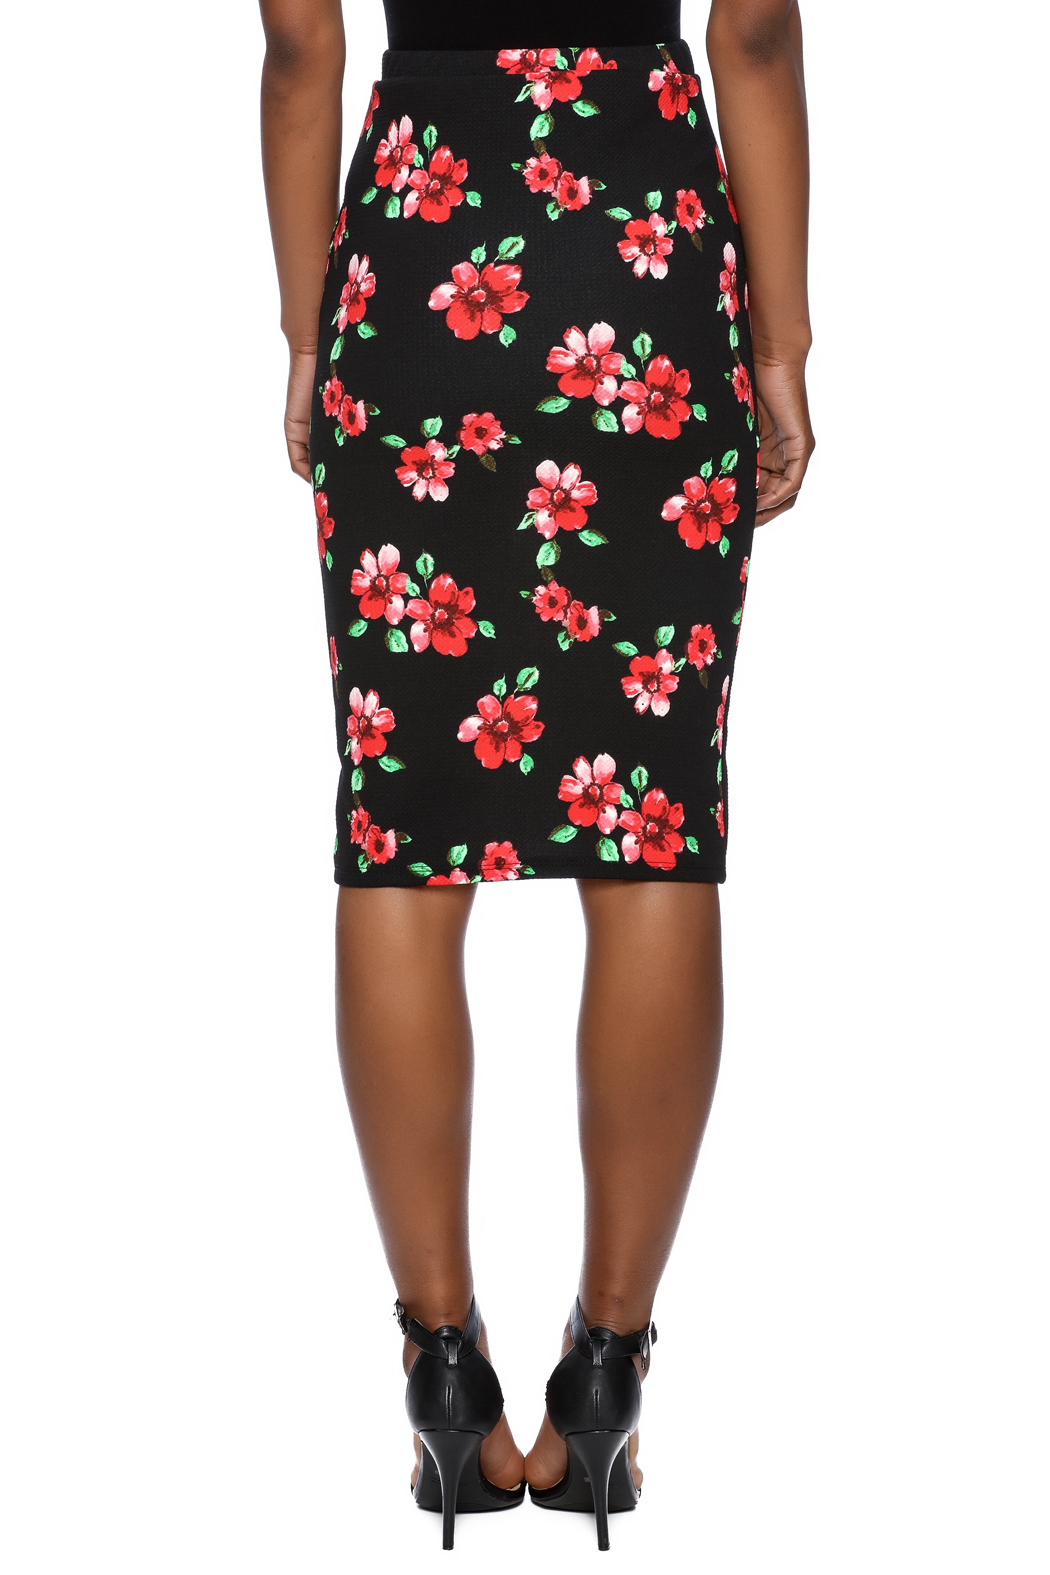 Moa Floral Printed Pencil Skirt - Back Cropped Image